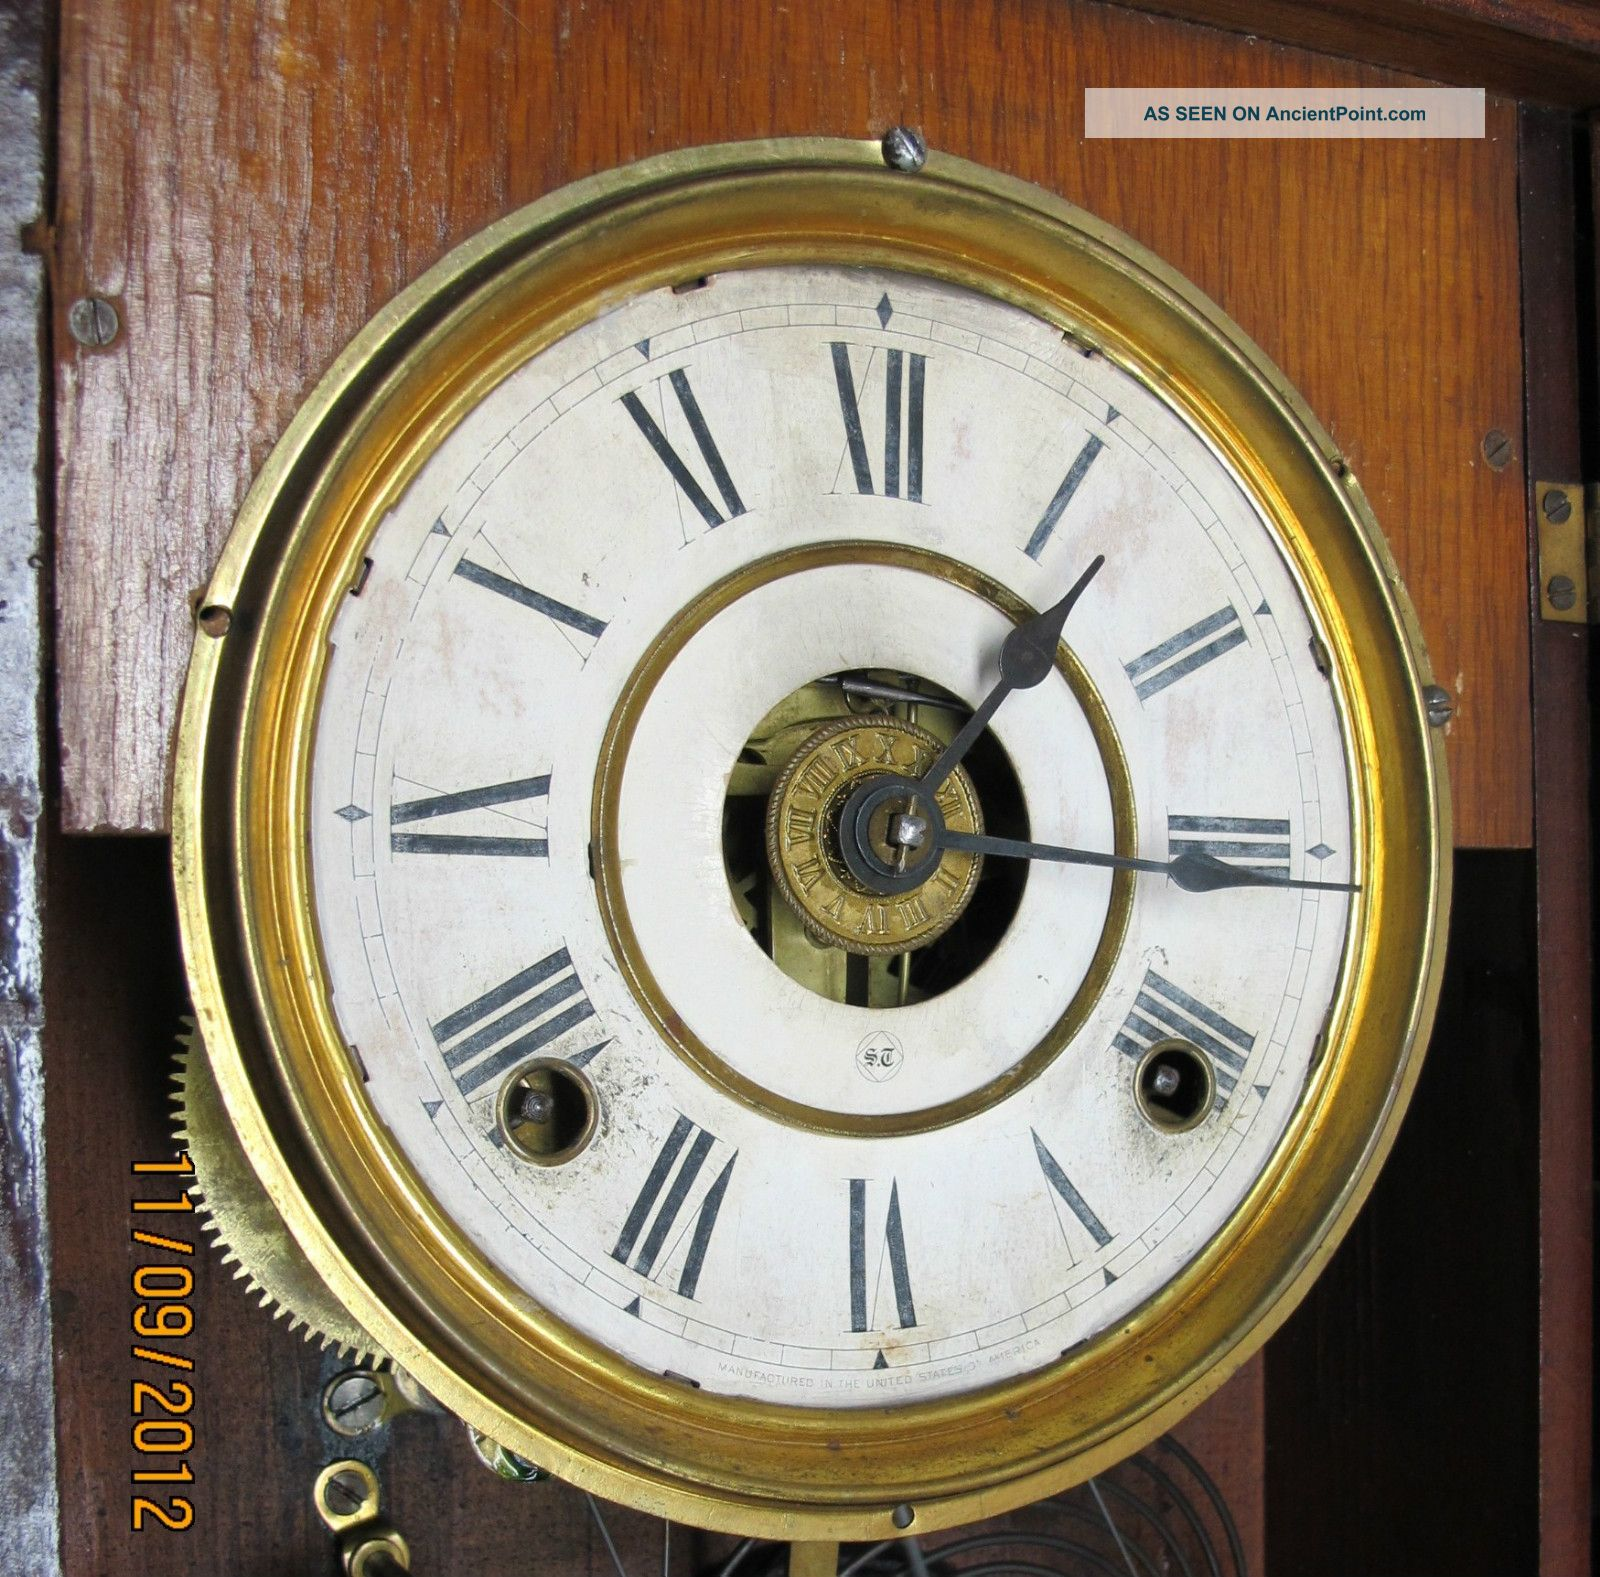 dating seth thomas adamantine mantel clock Adamantine celluloid veneer was patented in 1880 c1882 – seth thomas introduced clock models in adamantine veneer finishes which mimicked marble, slate, wood grains and other materials c1910 – bakelite an early inflammable, mouldable plastic, was invented belgian born scientist dr leo baekeland, founded the bakelite corporation.